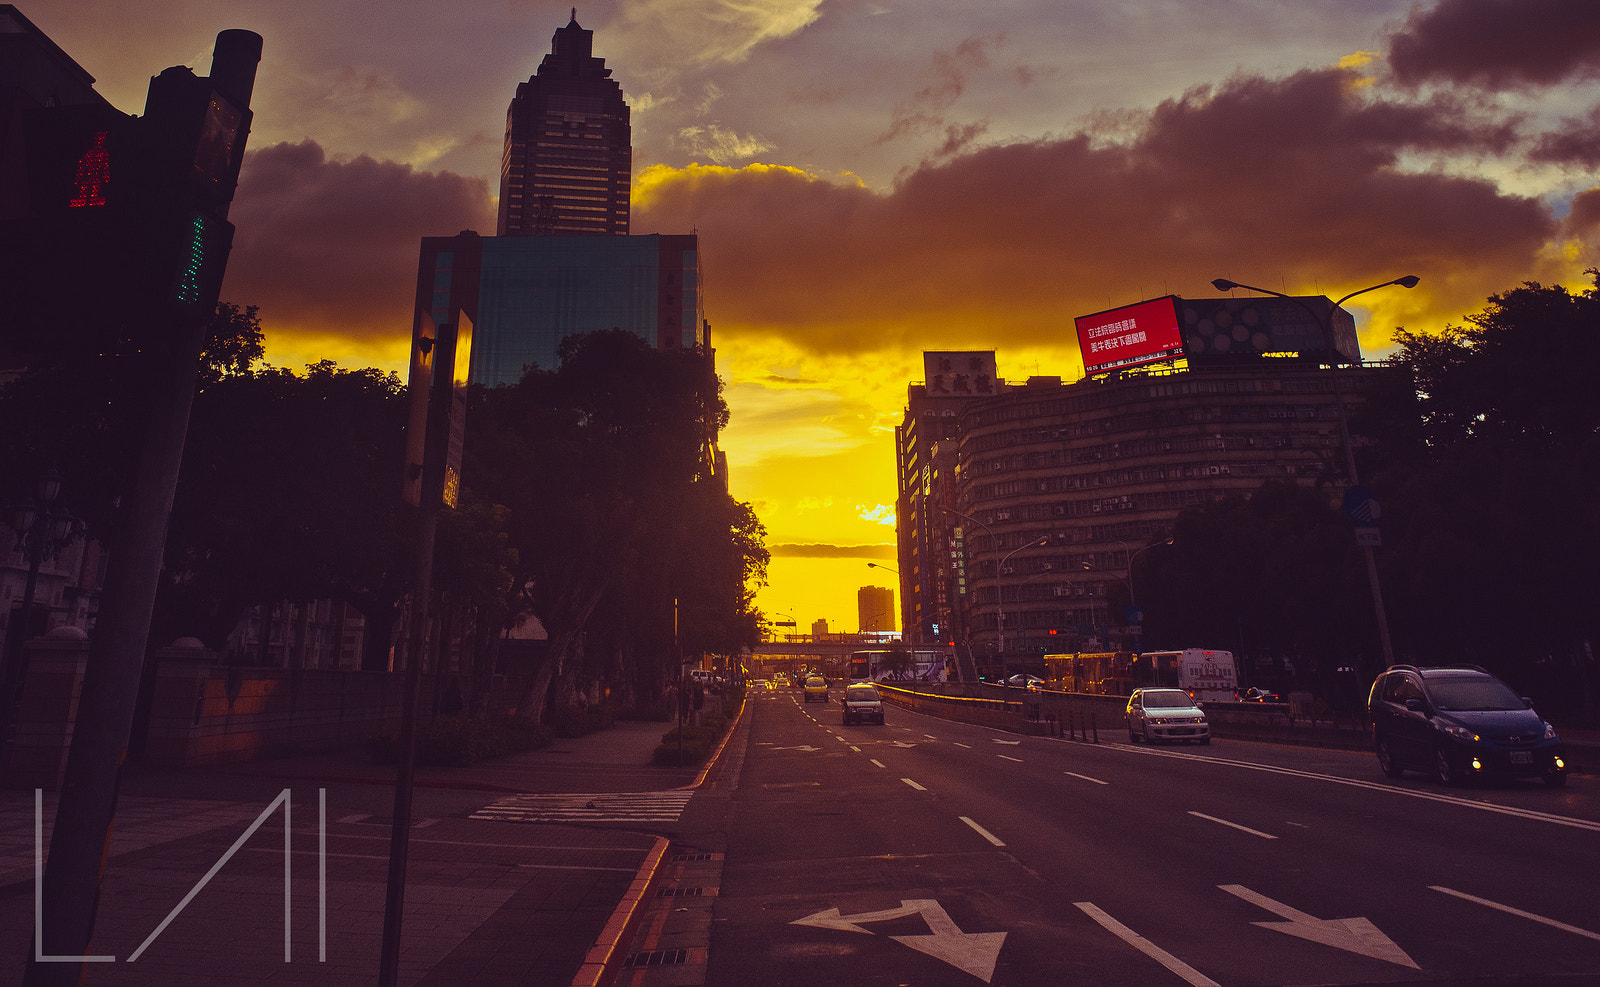 Photograph Golden hour @ Taipei City, Taiwan by Atmosphere Light on 500px